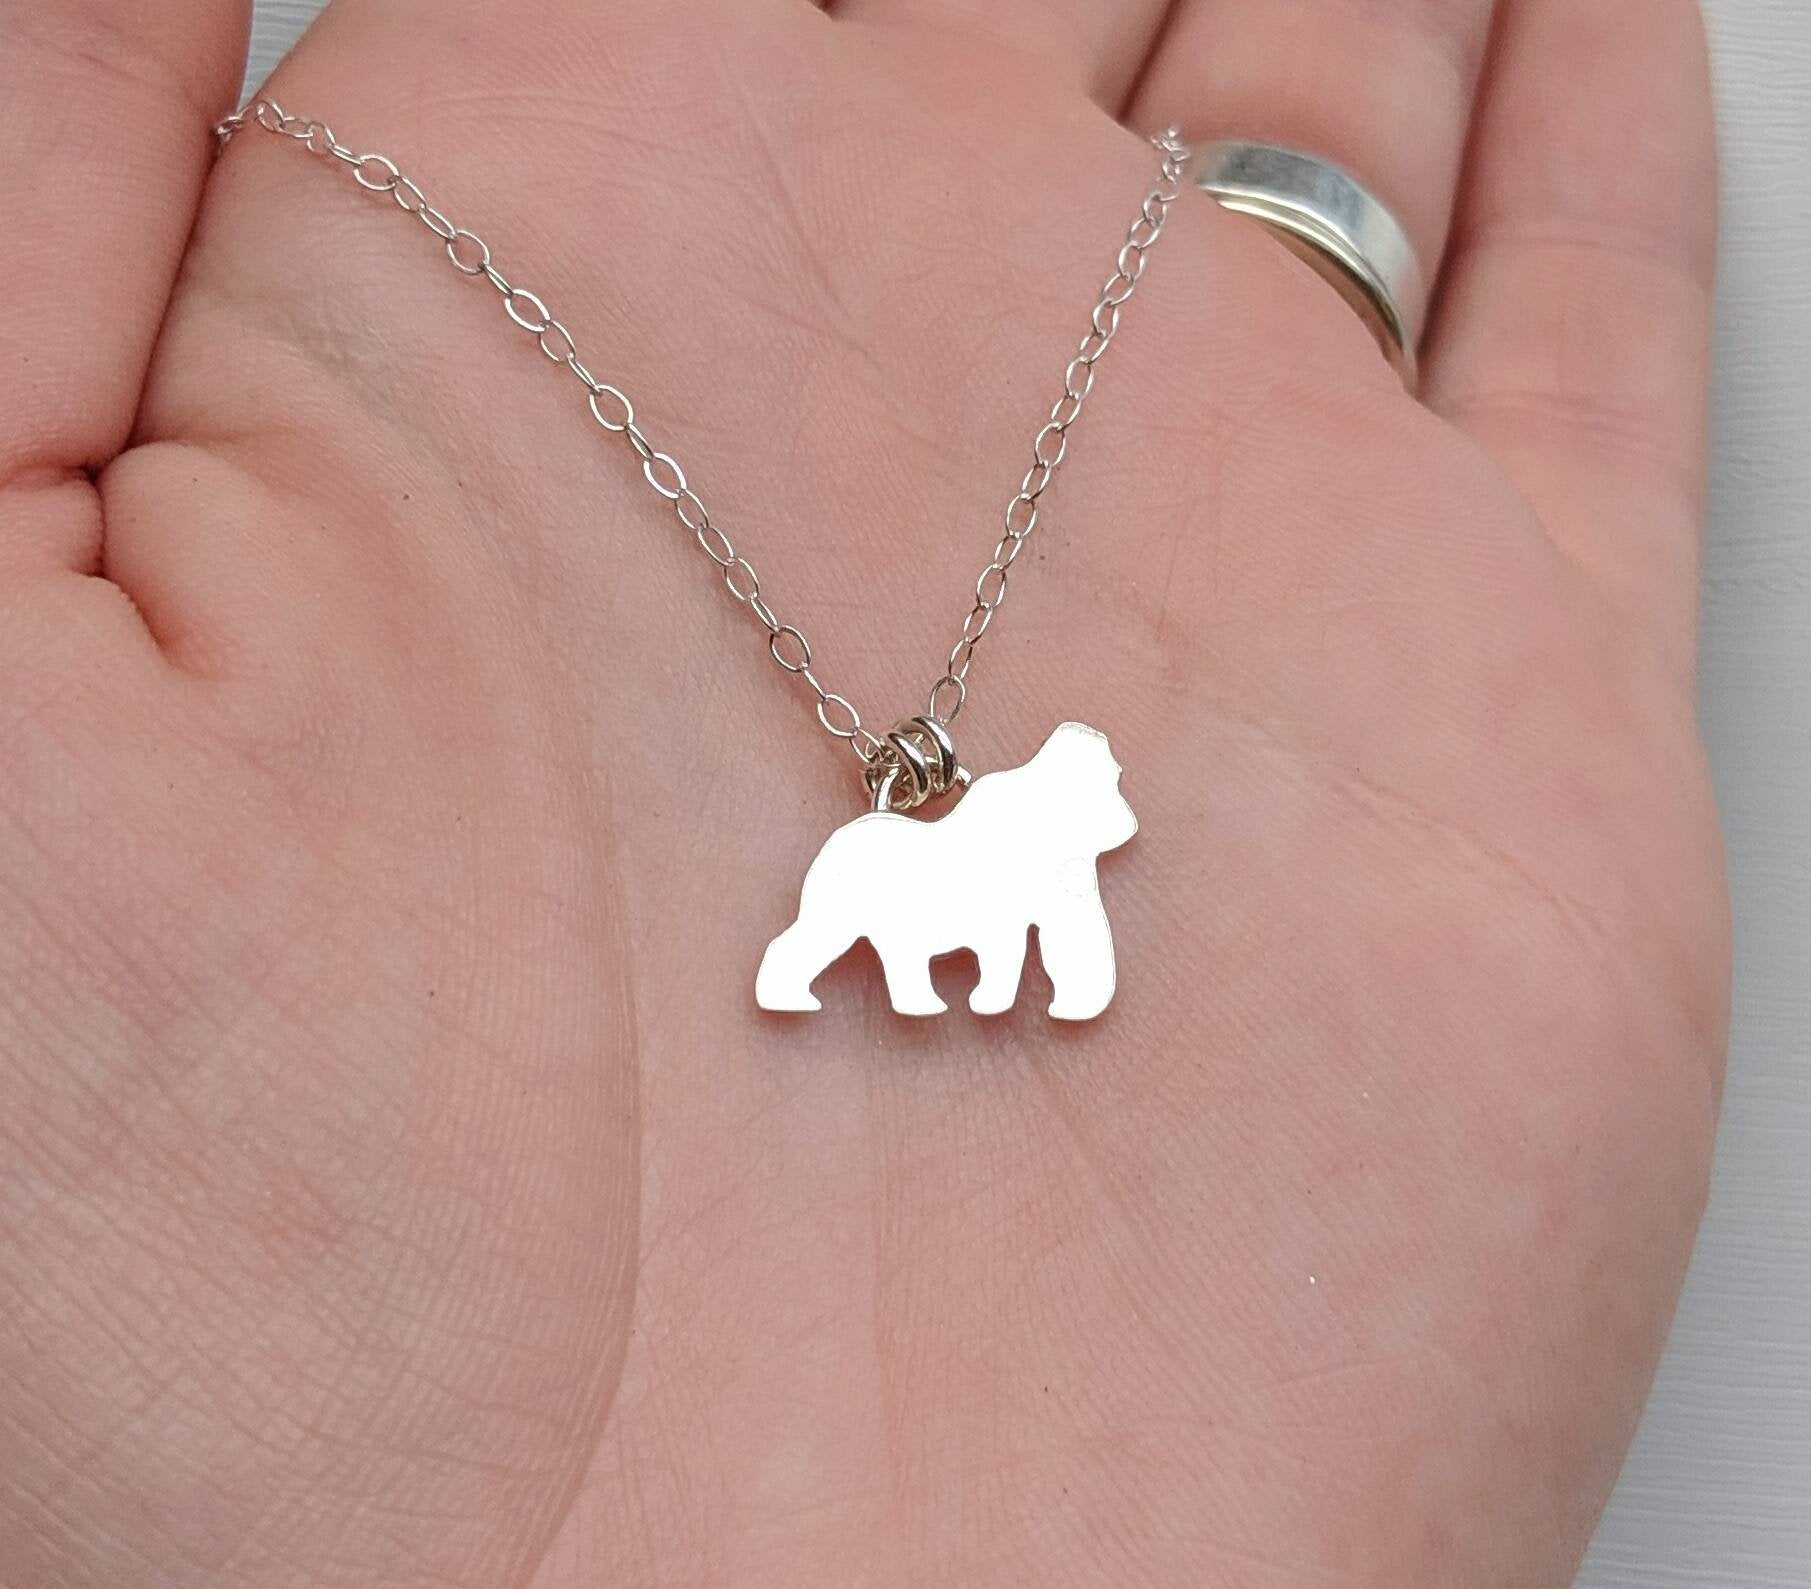 Sterling Silver Gorilla Necklace handmade by An American Metalsmith